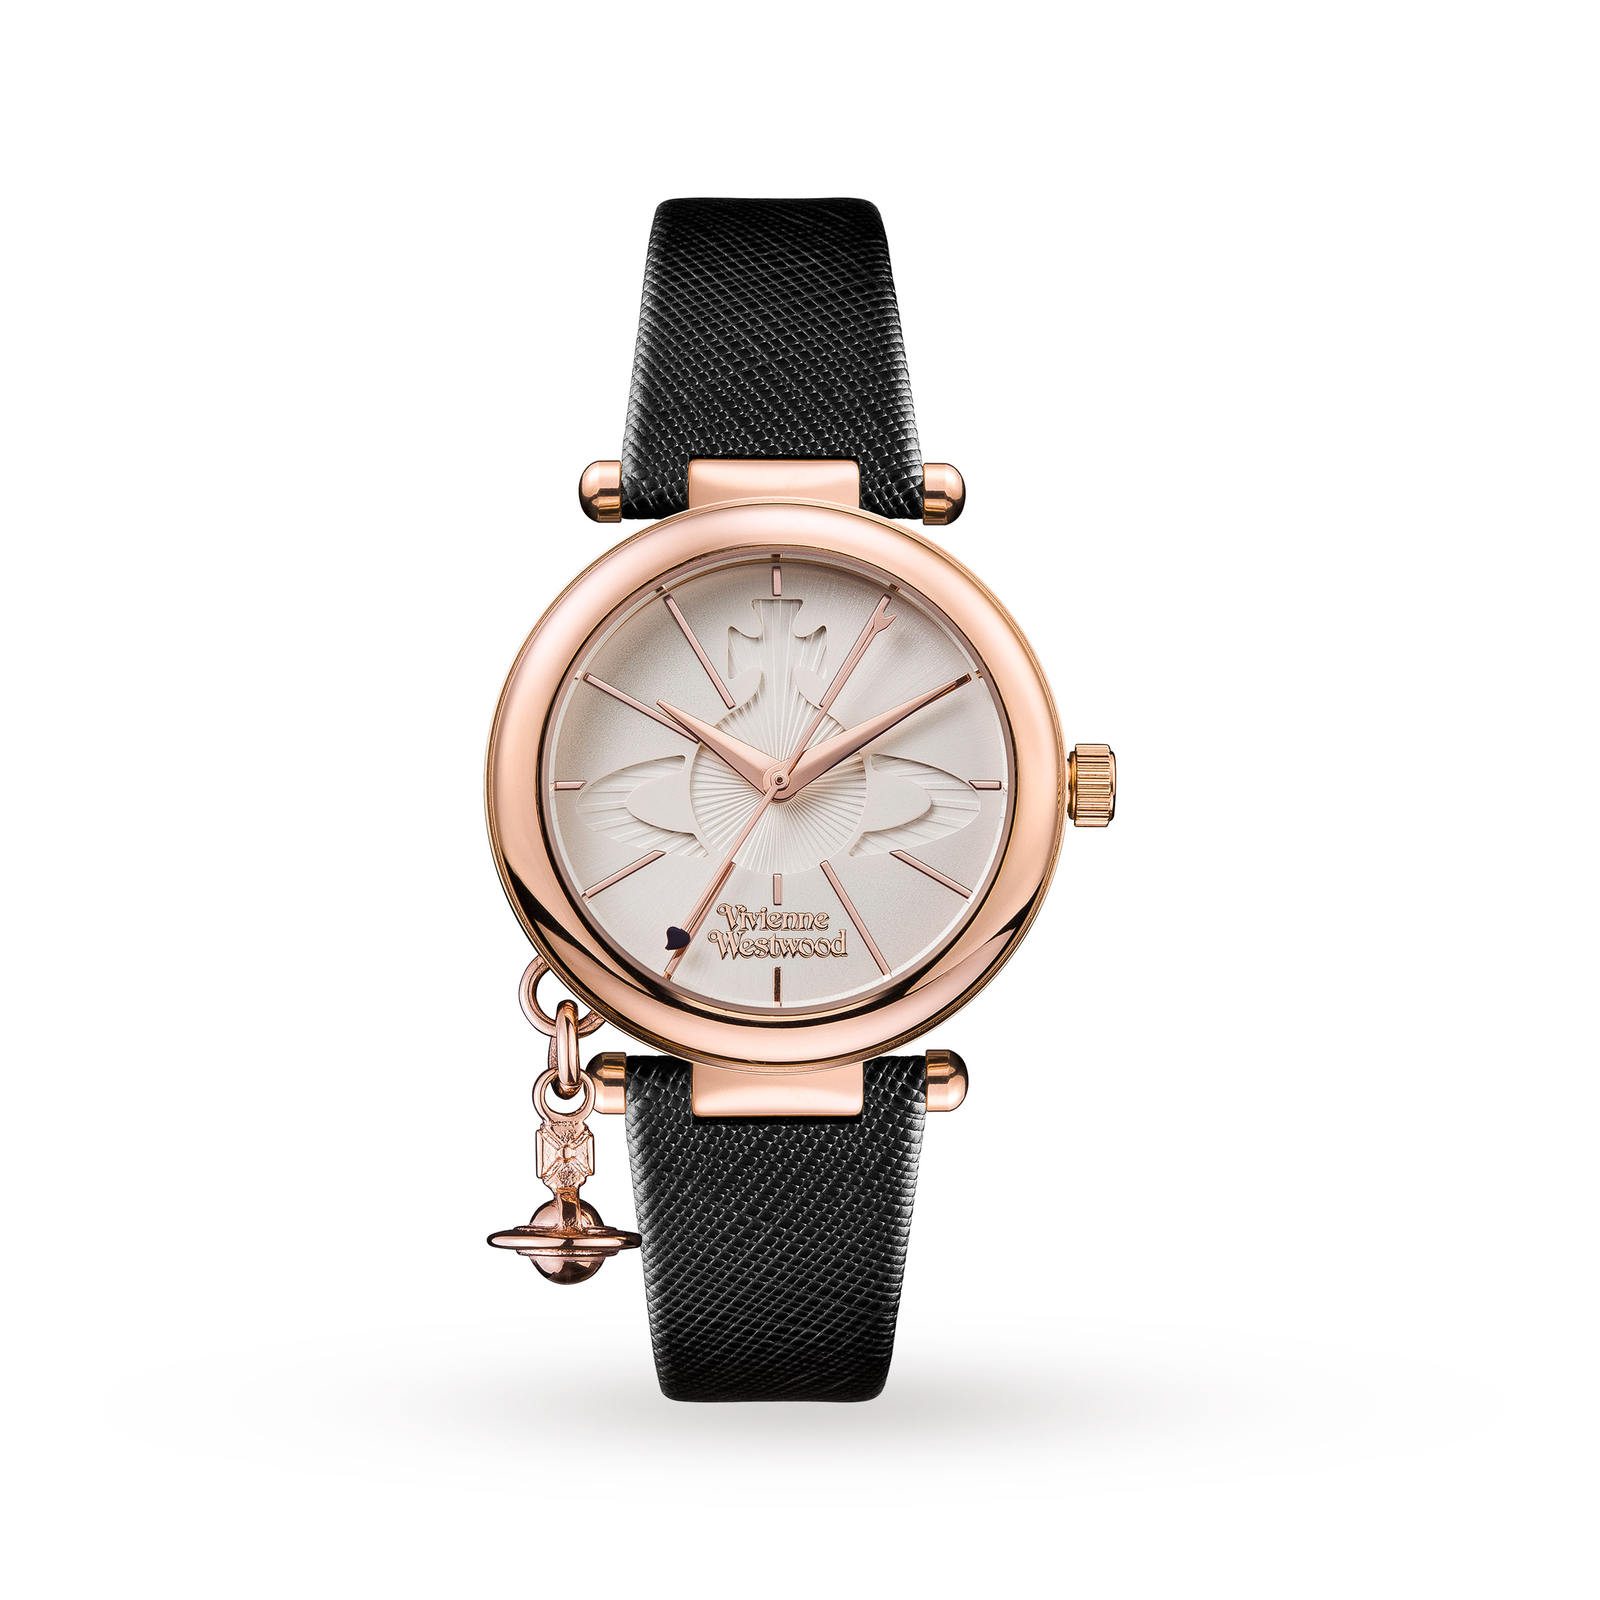 Vivienne Westwood Ladies' Orb Watch